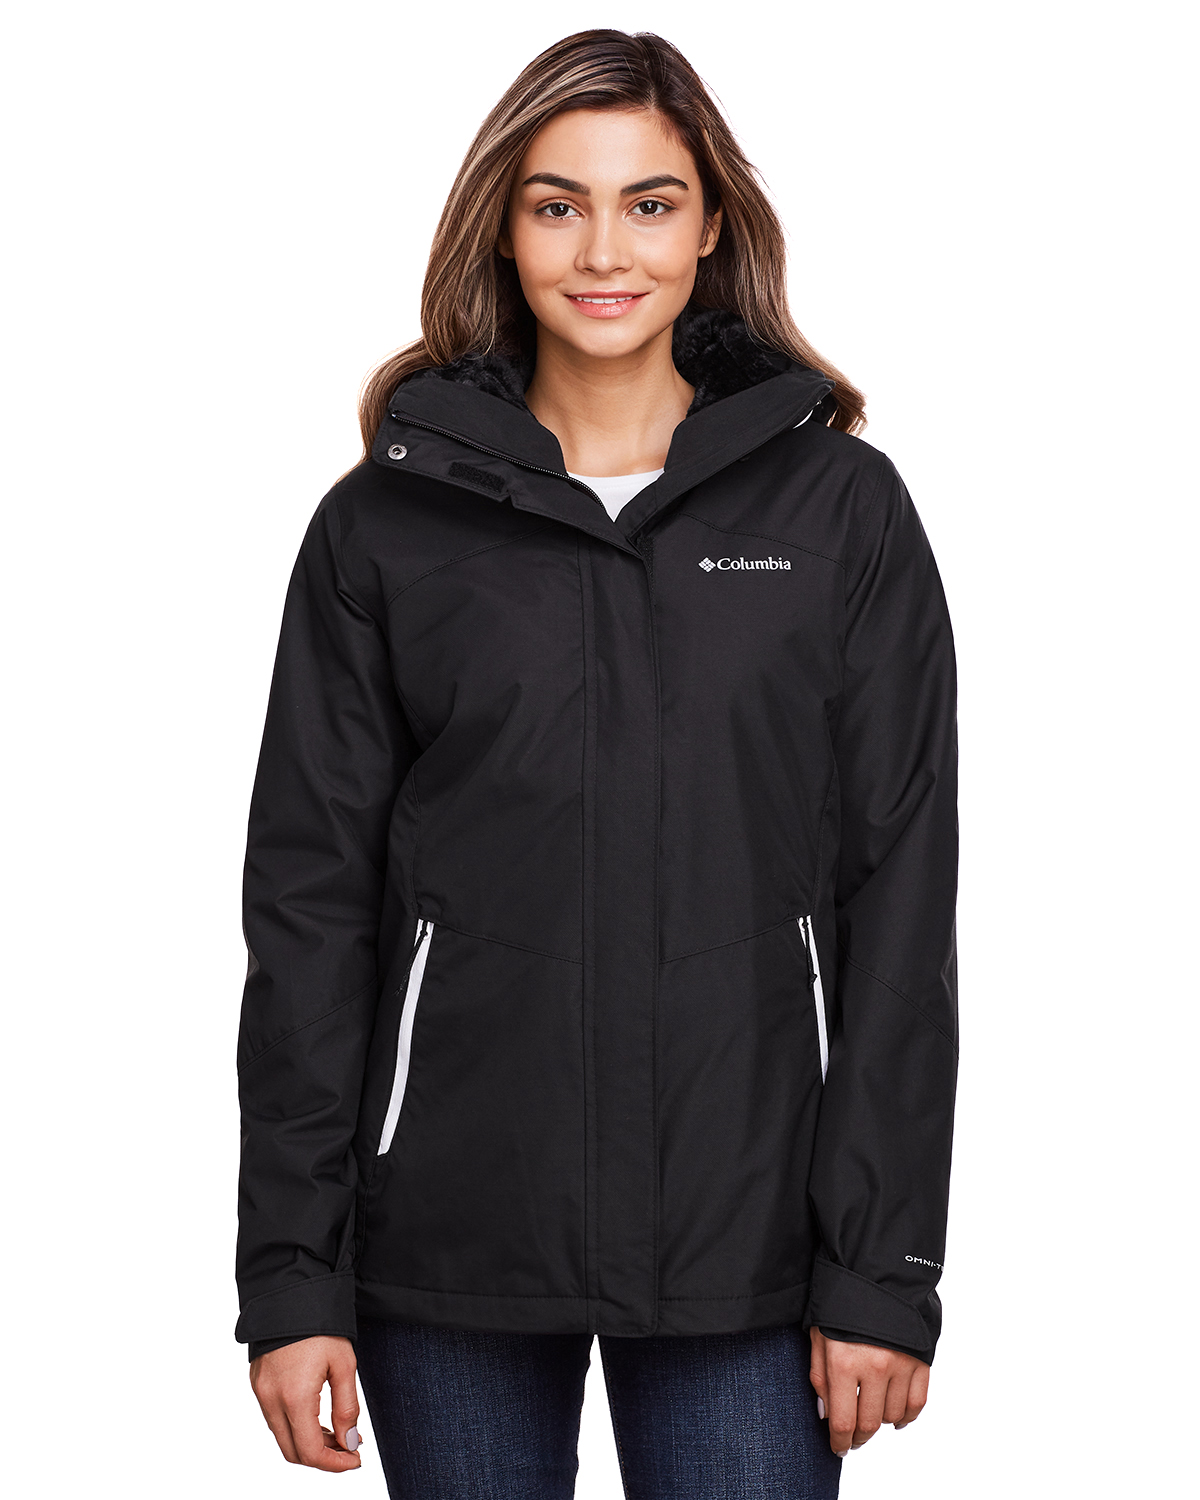 Picture of Columbia Ladies' Bugaboo II Fleece Interchange Jacket